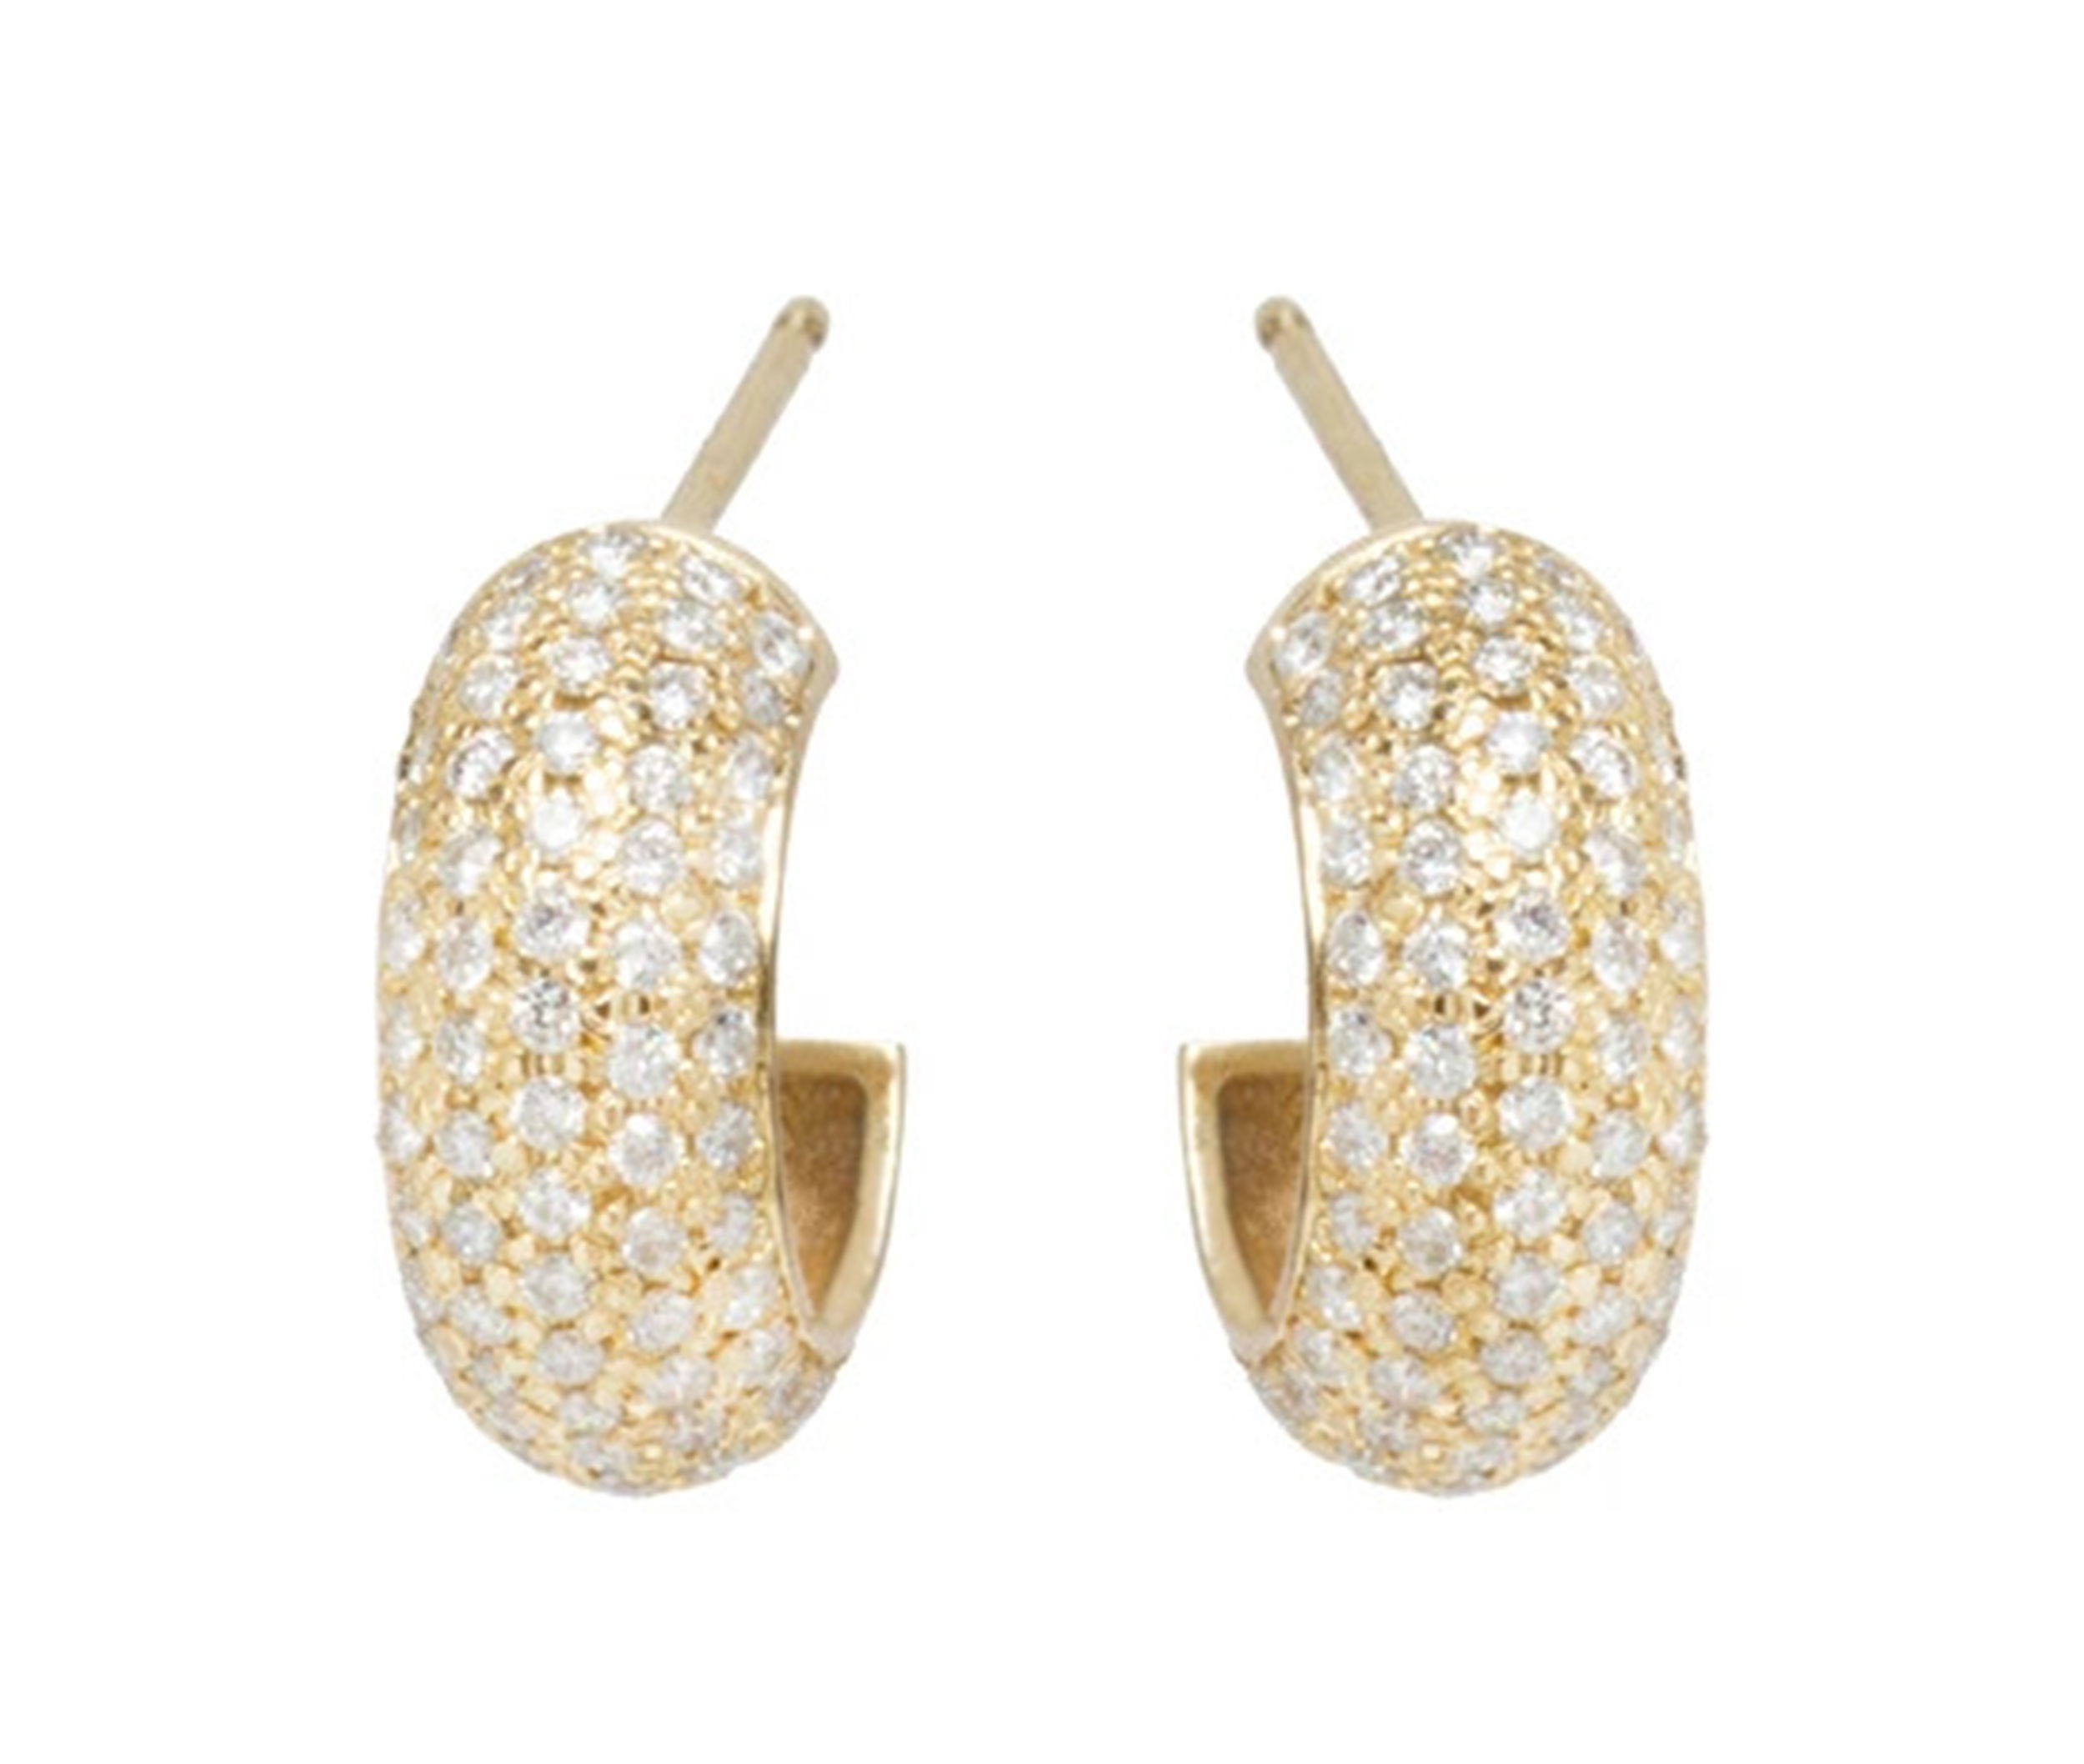 14k Chubby Huggie Hoops Covered In Pave Diamonds